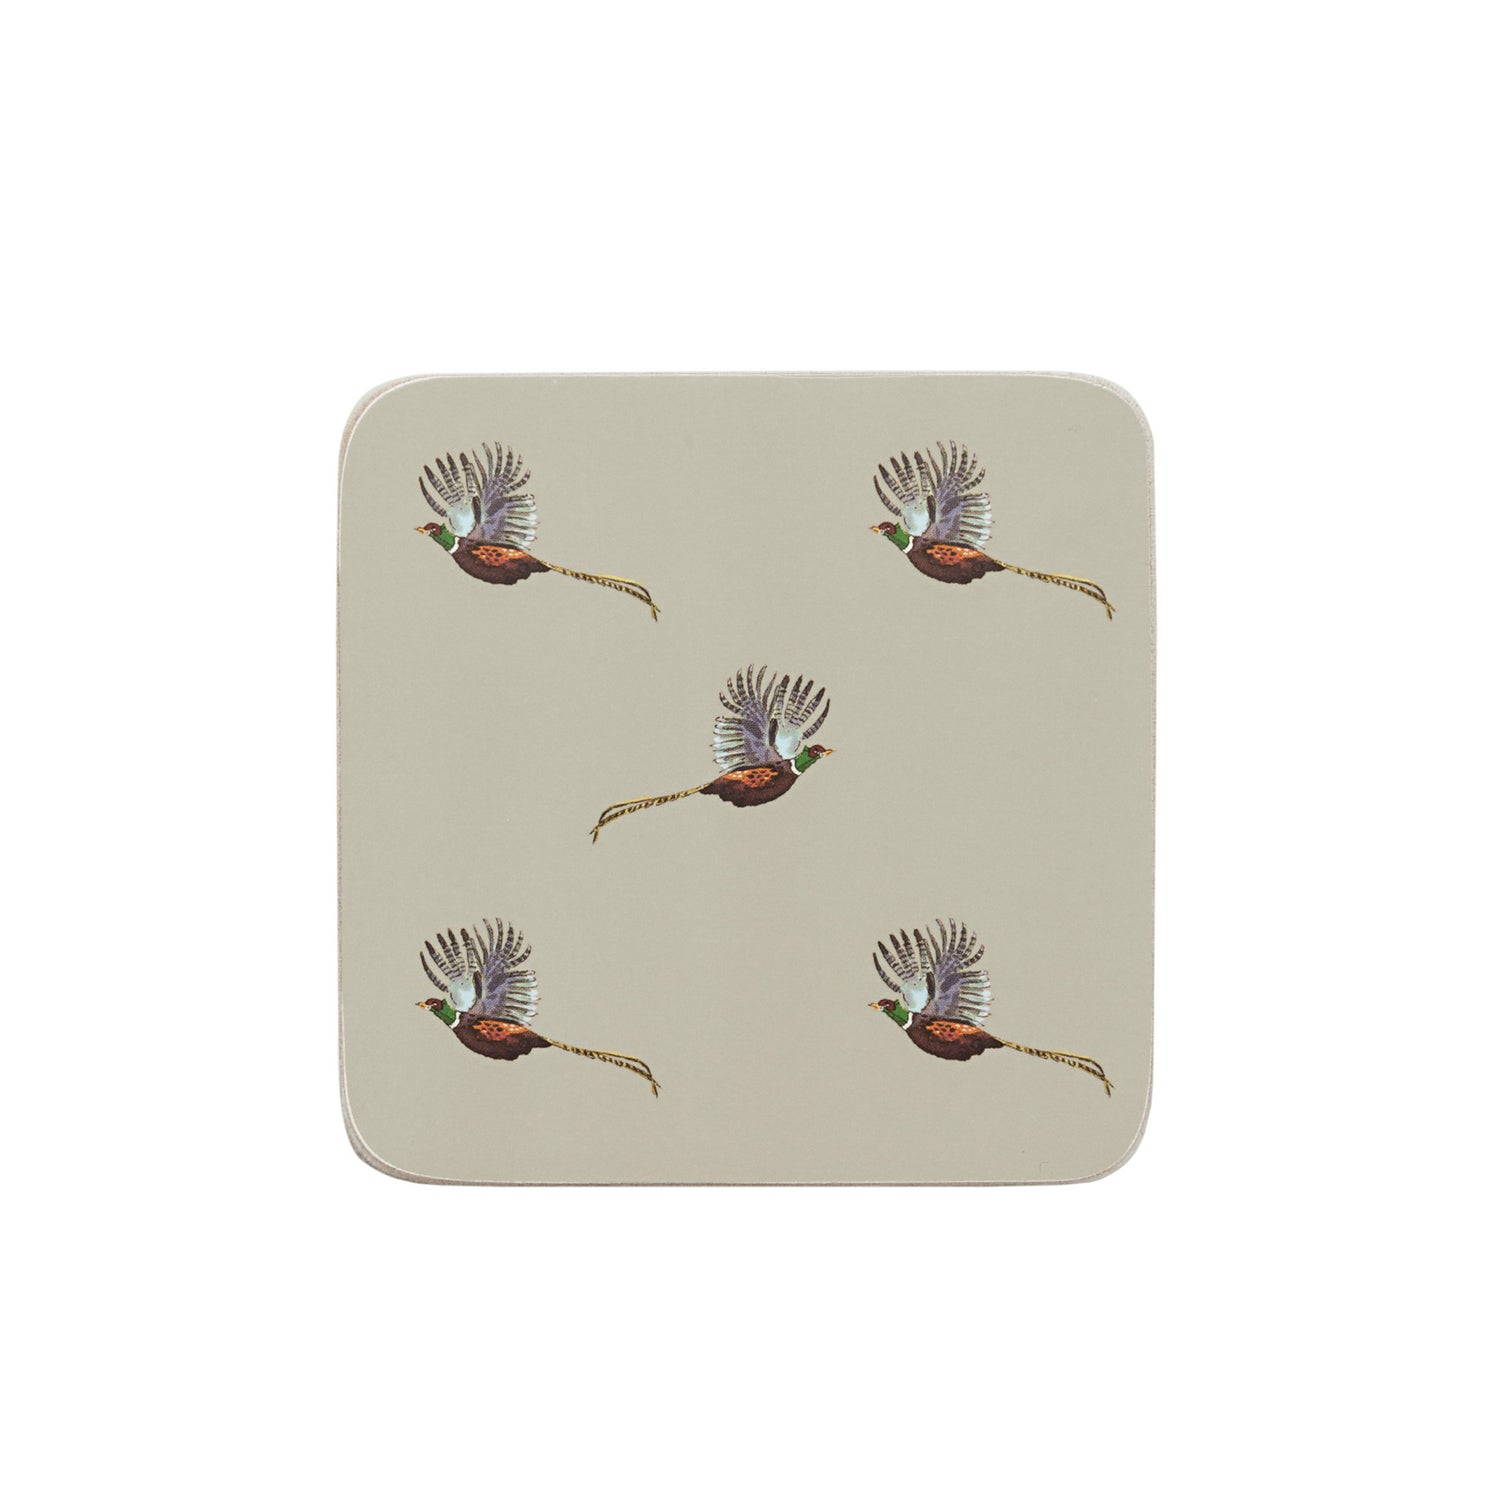 Pheasant Coasters - Set of 4